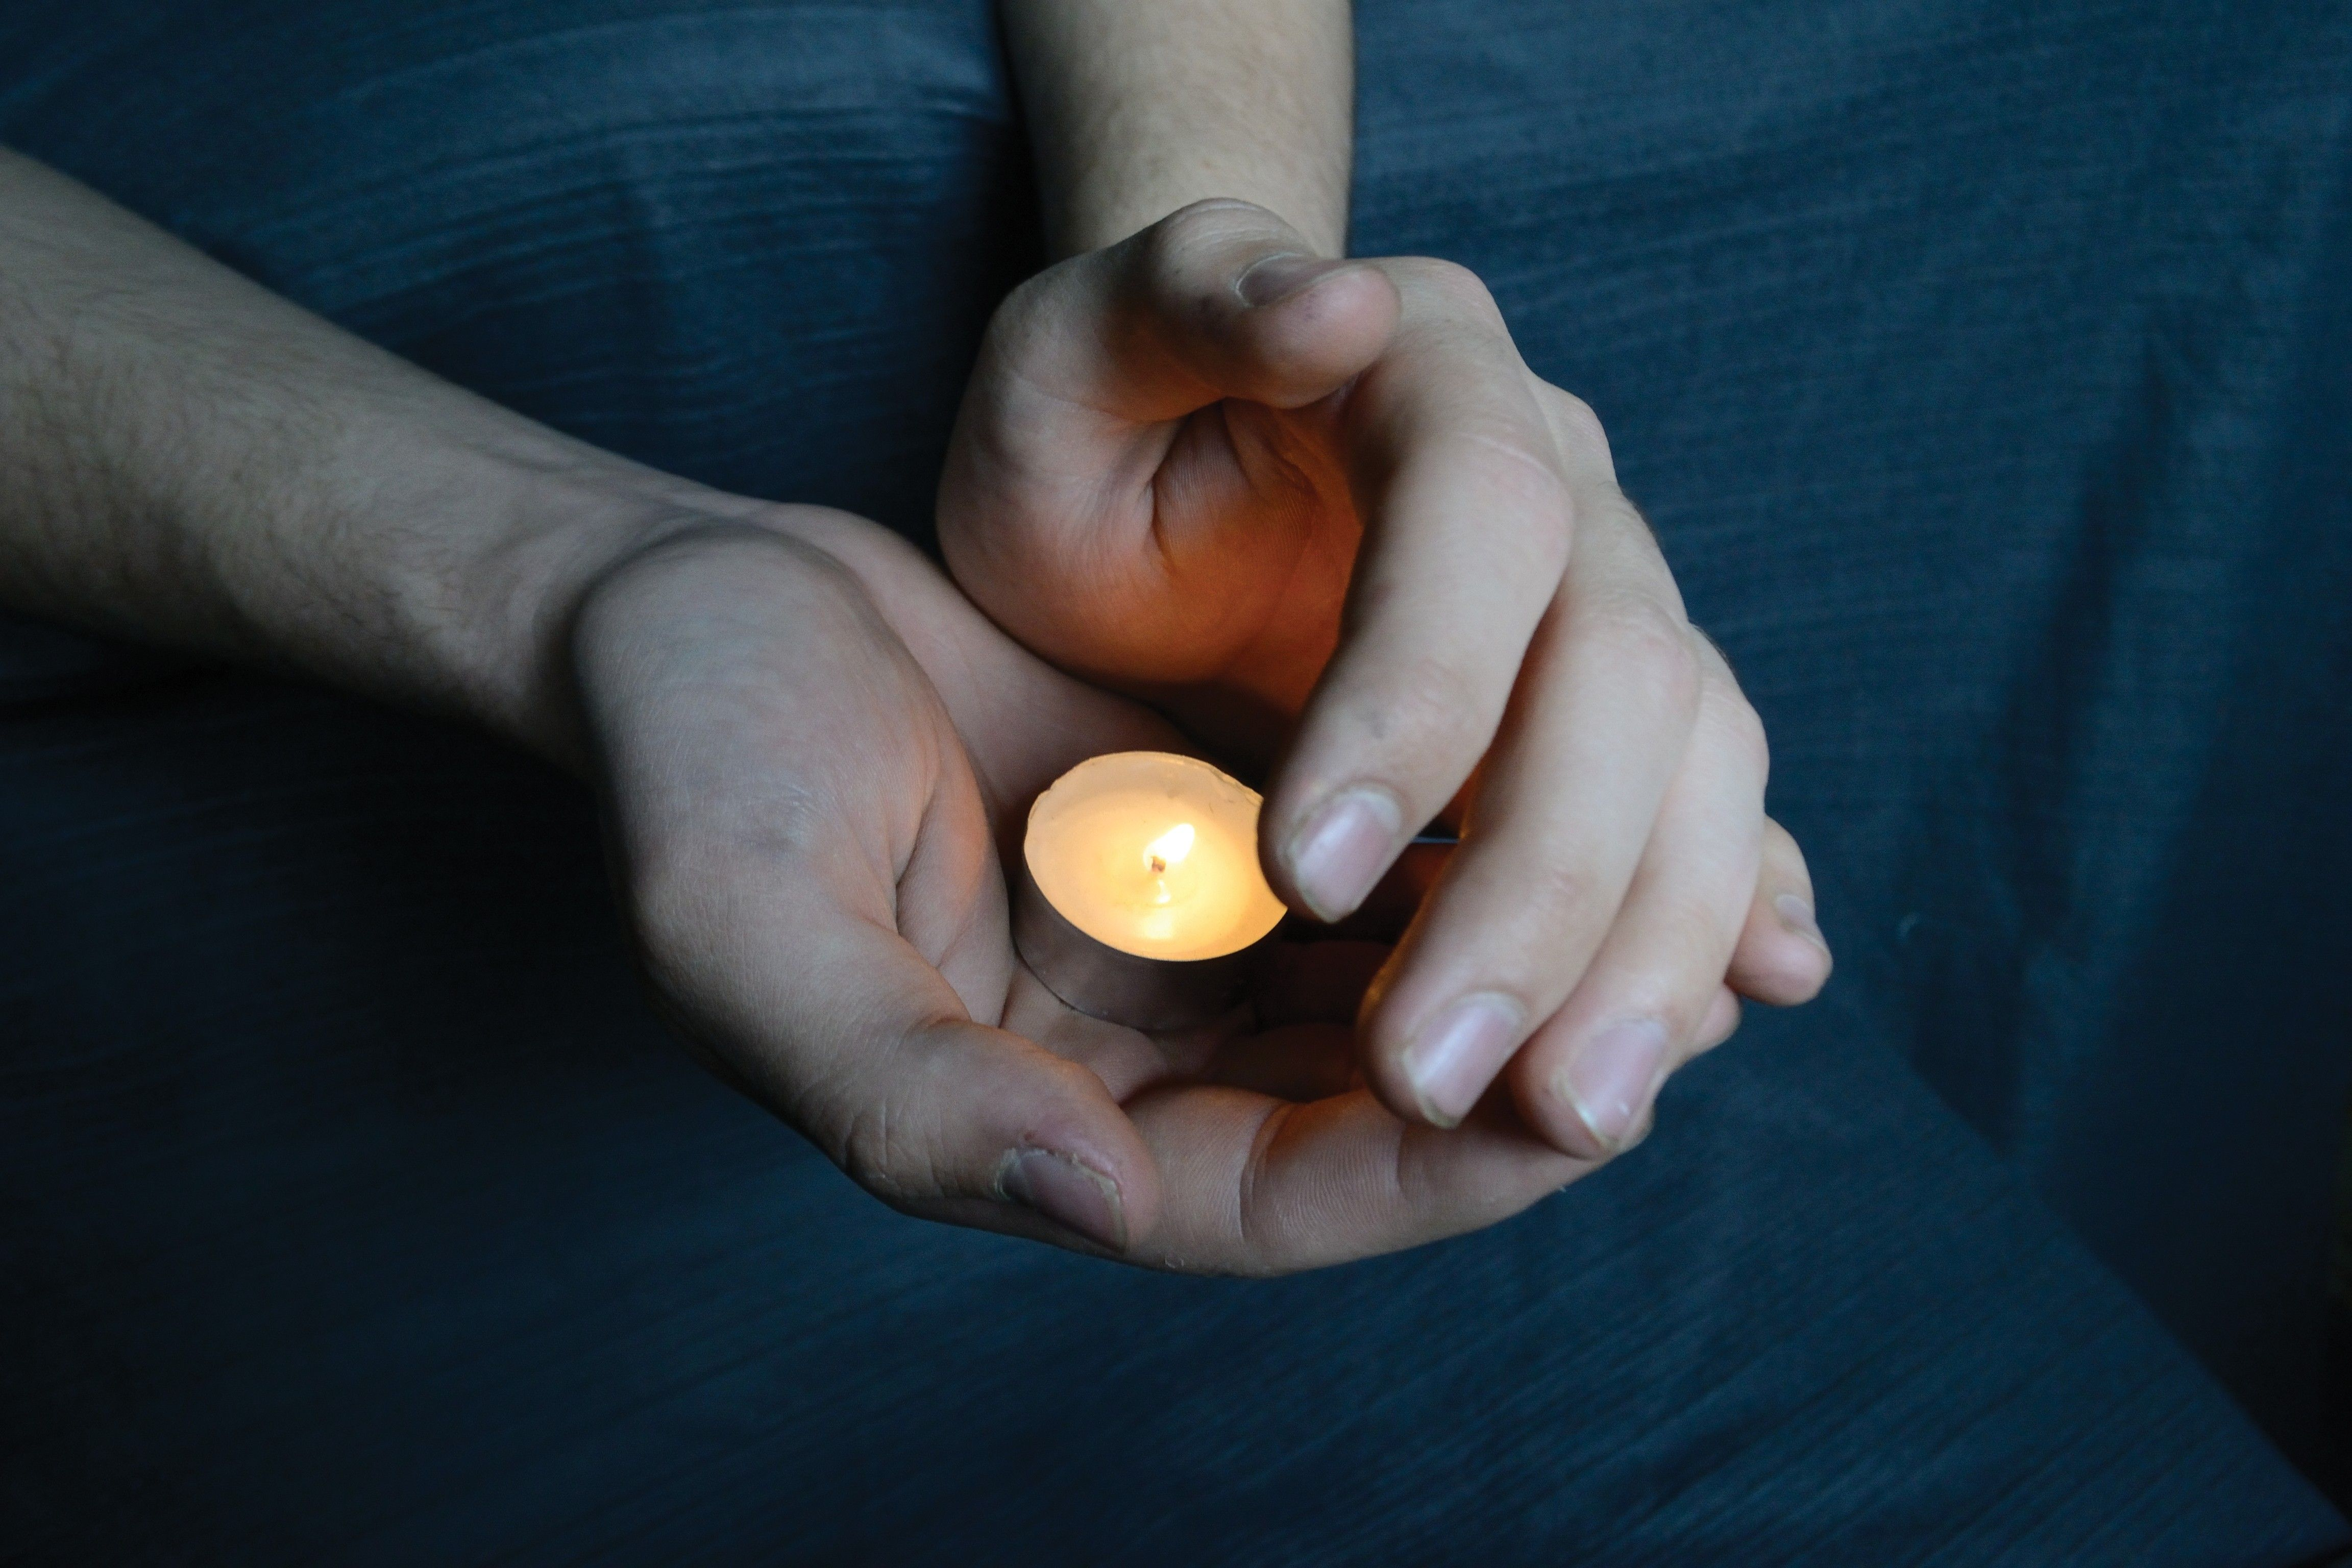 Hands holding a candle in the dark, sheltering the flame from the wind.